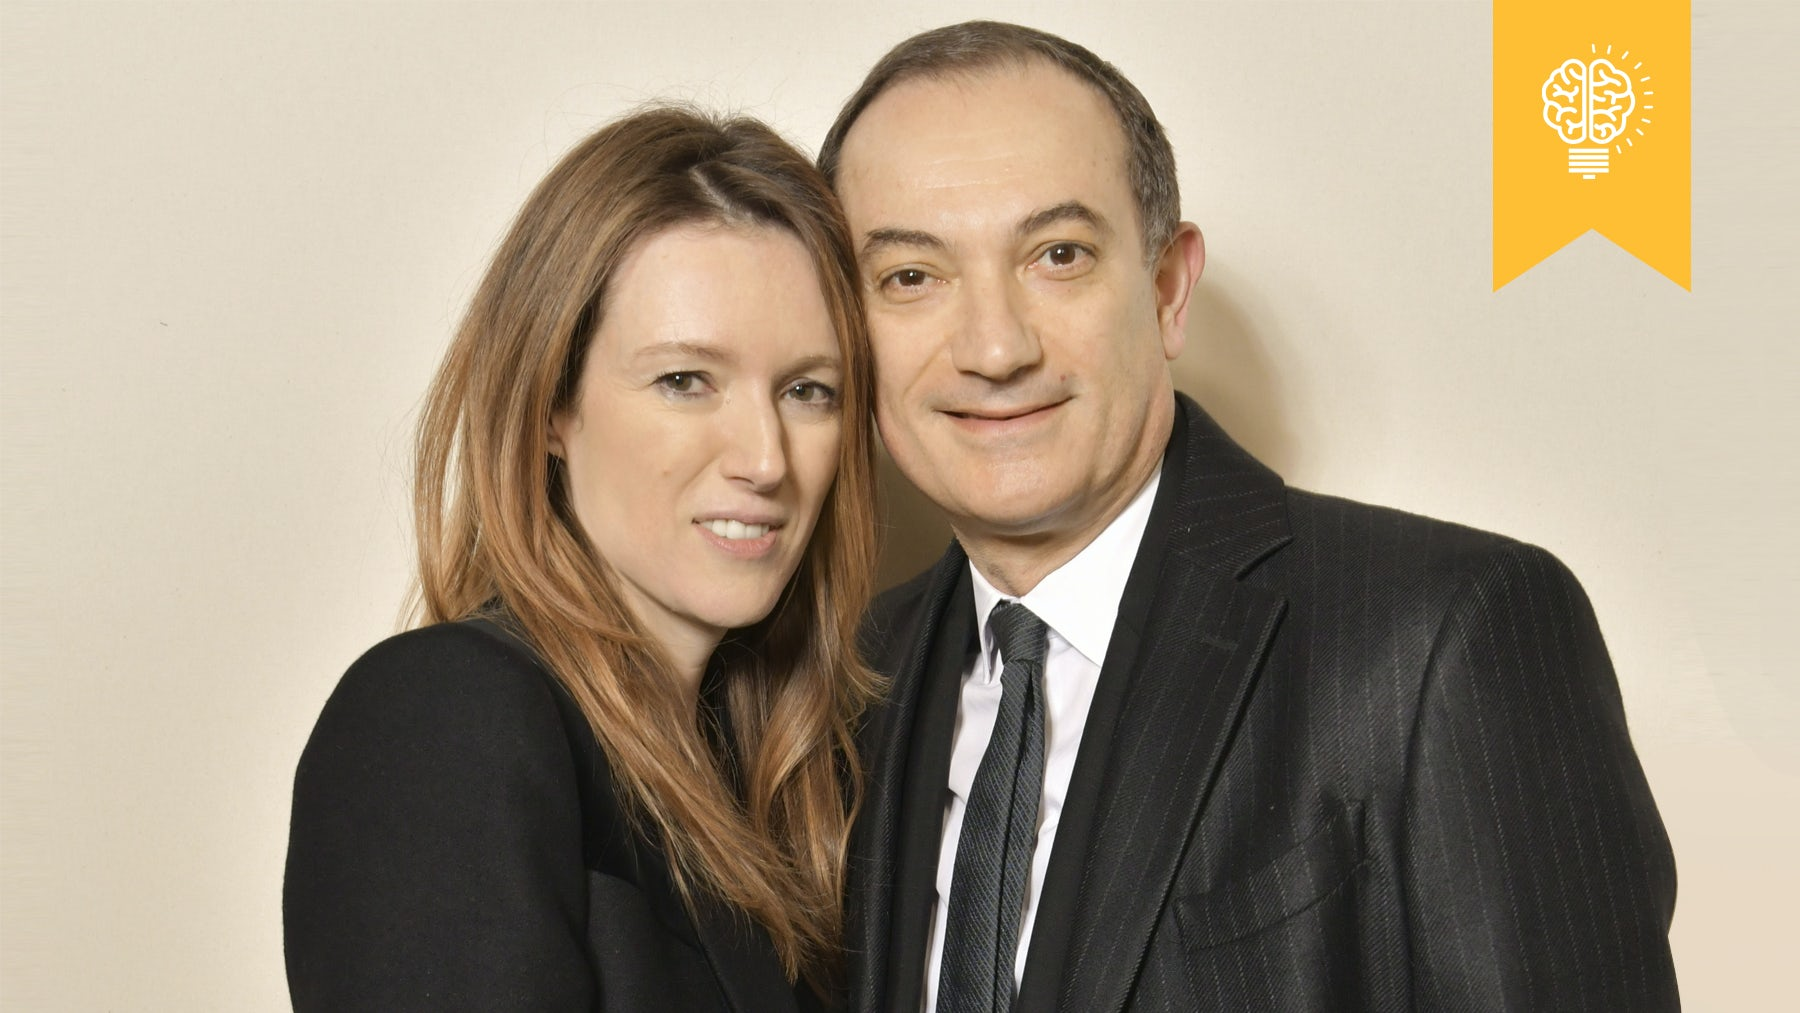 Givenchy's  Clare Waight Keller and Philippe Fortunato | Source: Courtesy